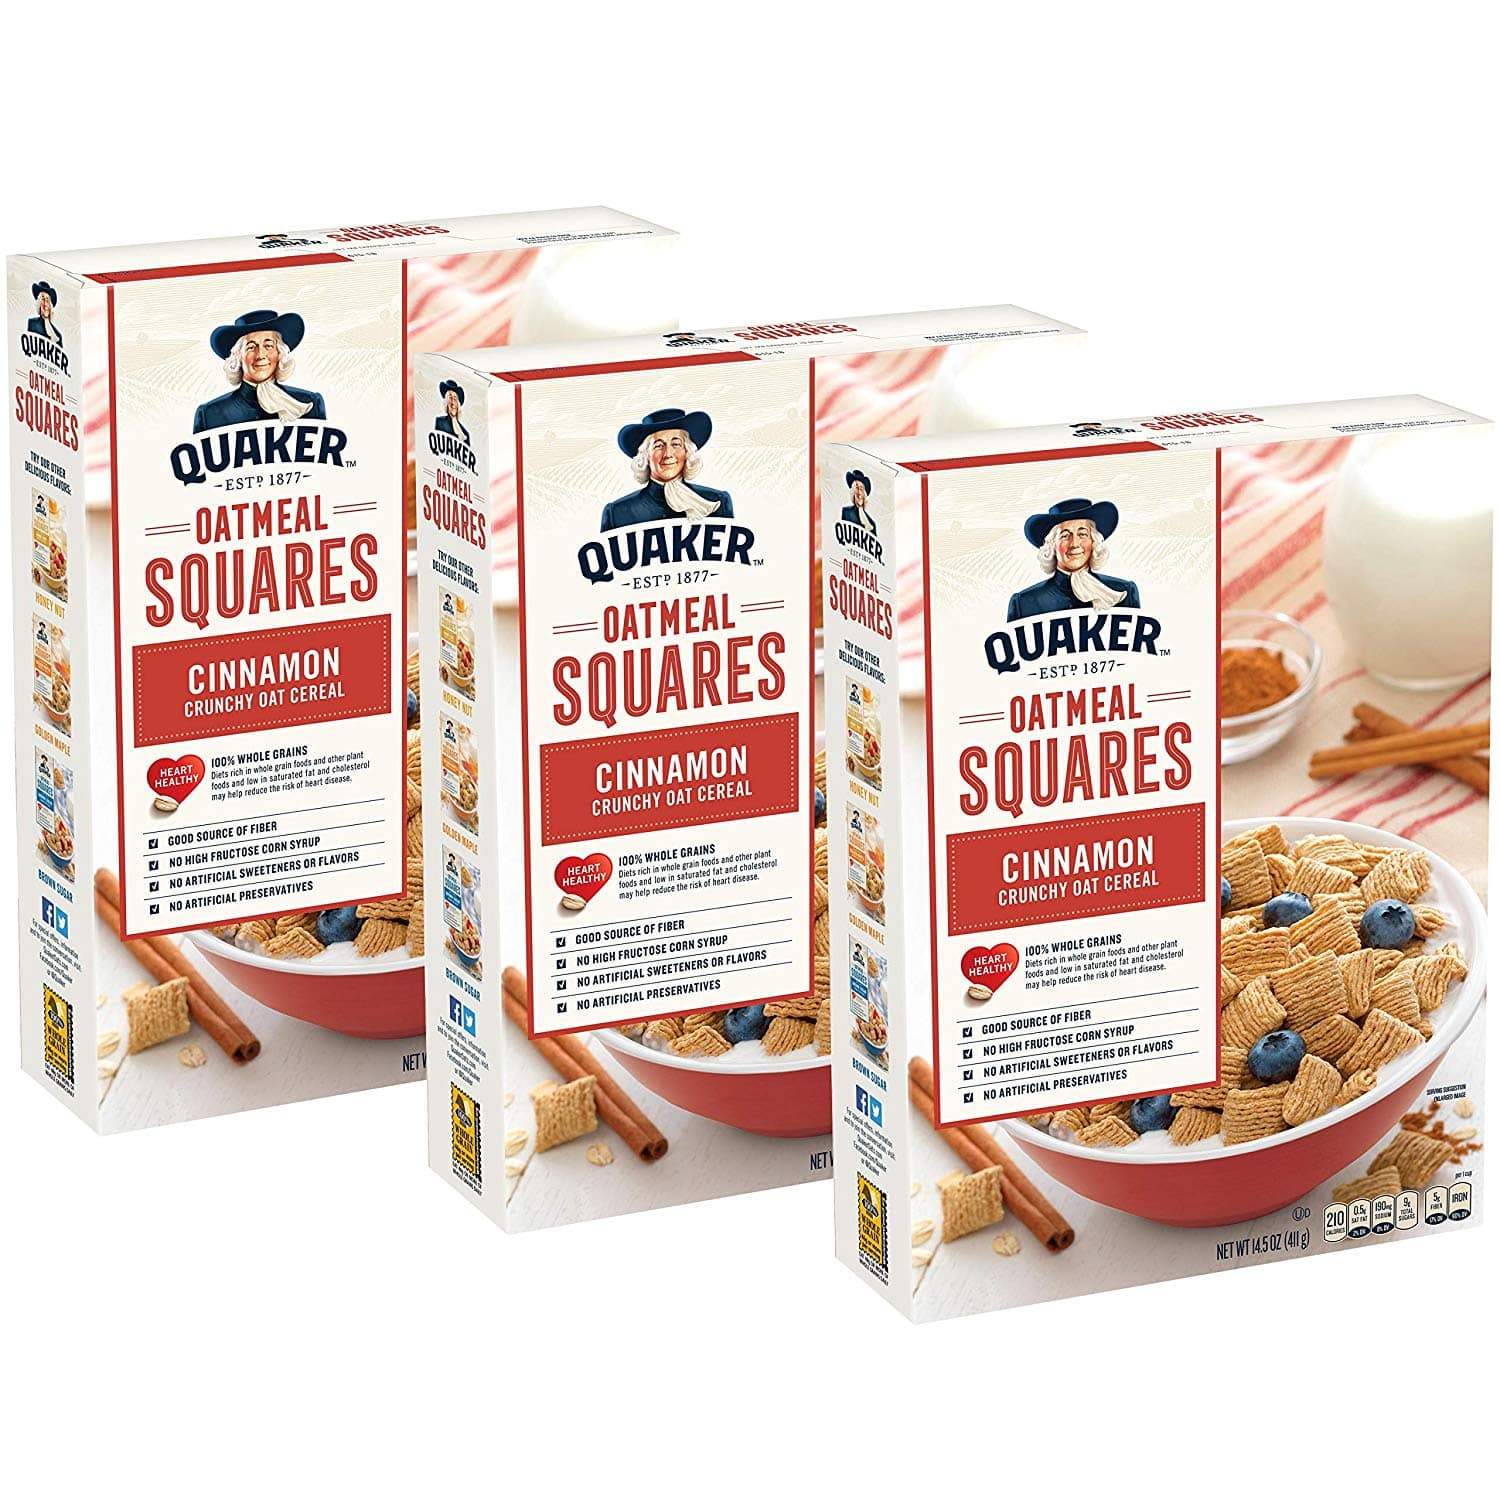 3-Count of 14.5oz Quaker Oatmeal Squares Breakfast Cereal (Cinnamon) $5.24 or less w/ S&S + Free S/H